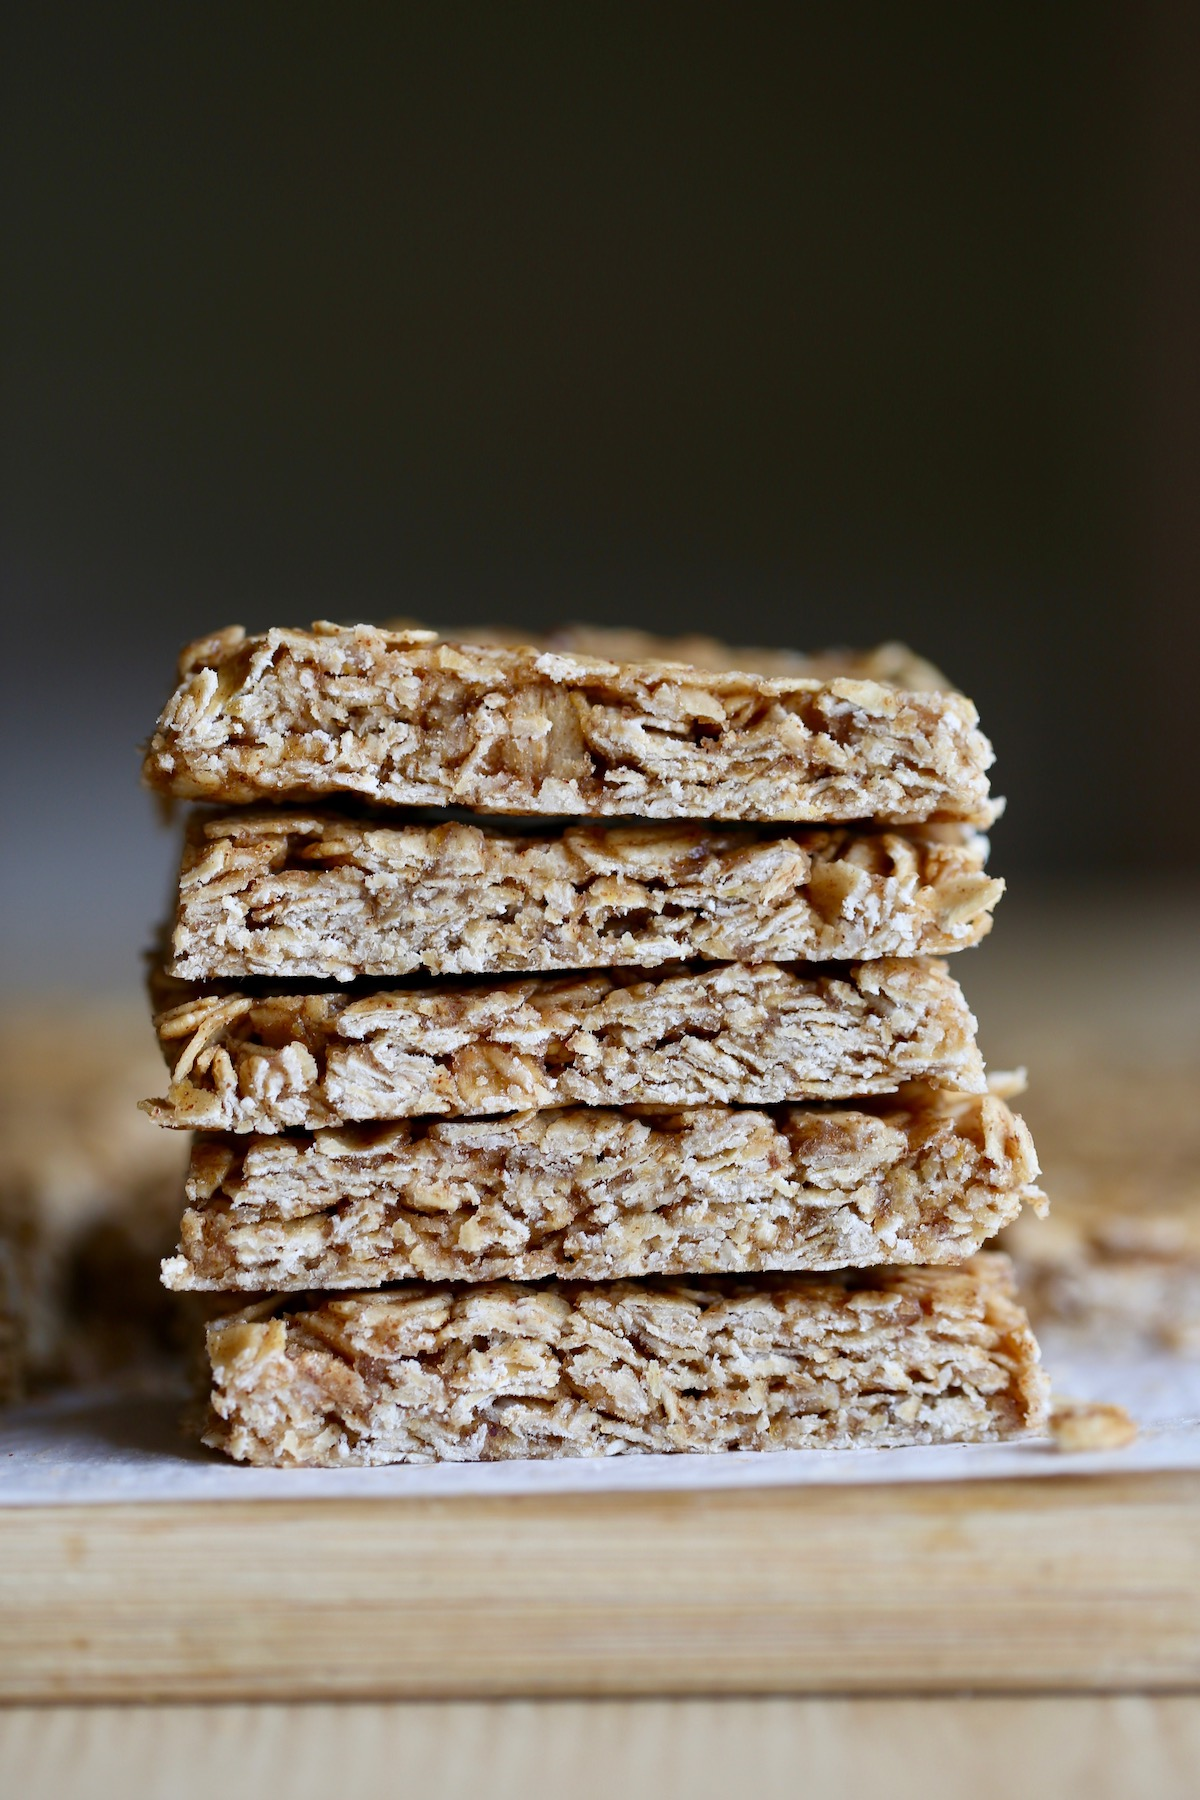 5 no-bake granola bars stacked on each other